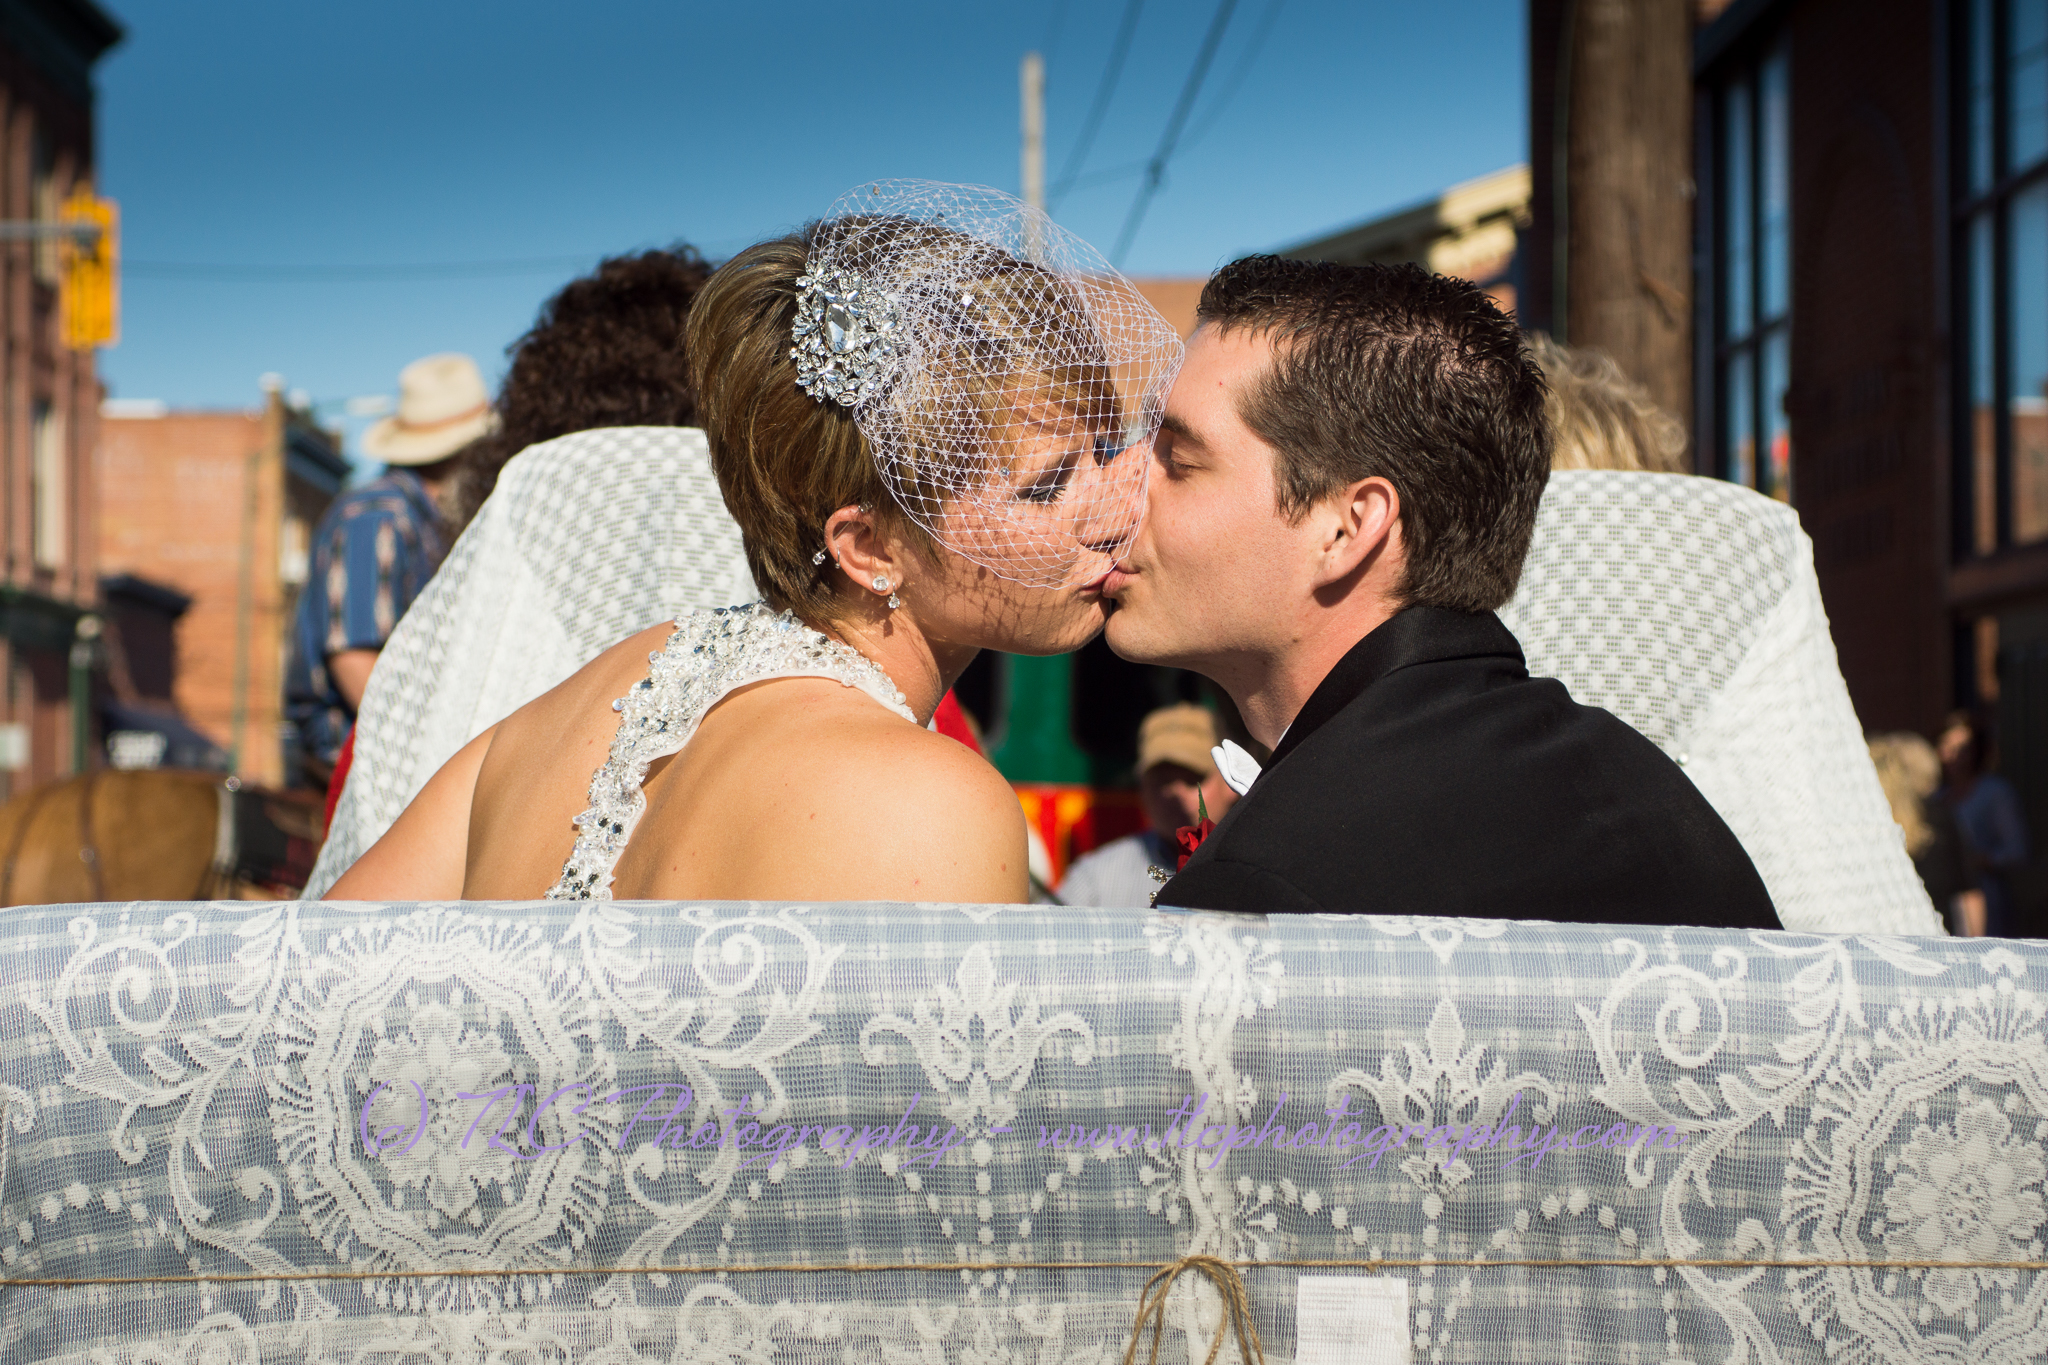 Another kiss before the horse and carriage ride to McFarland House in Martinsburg